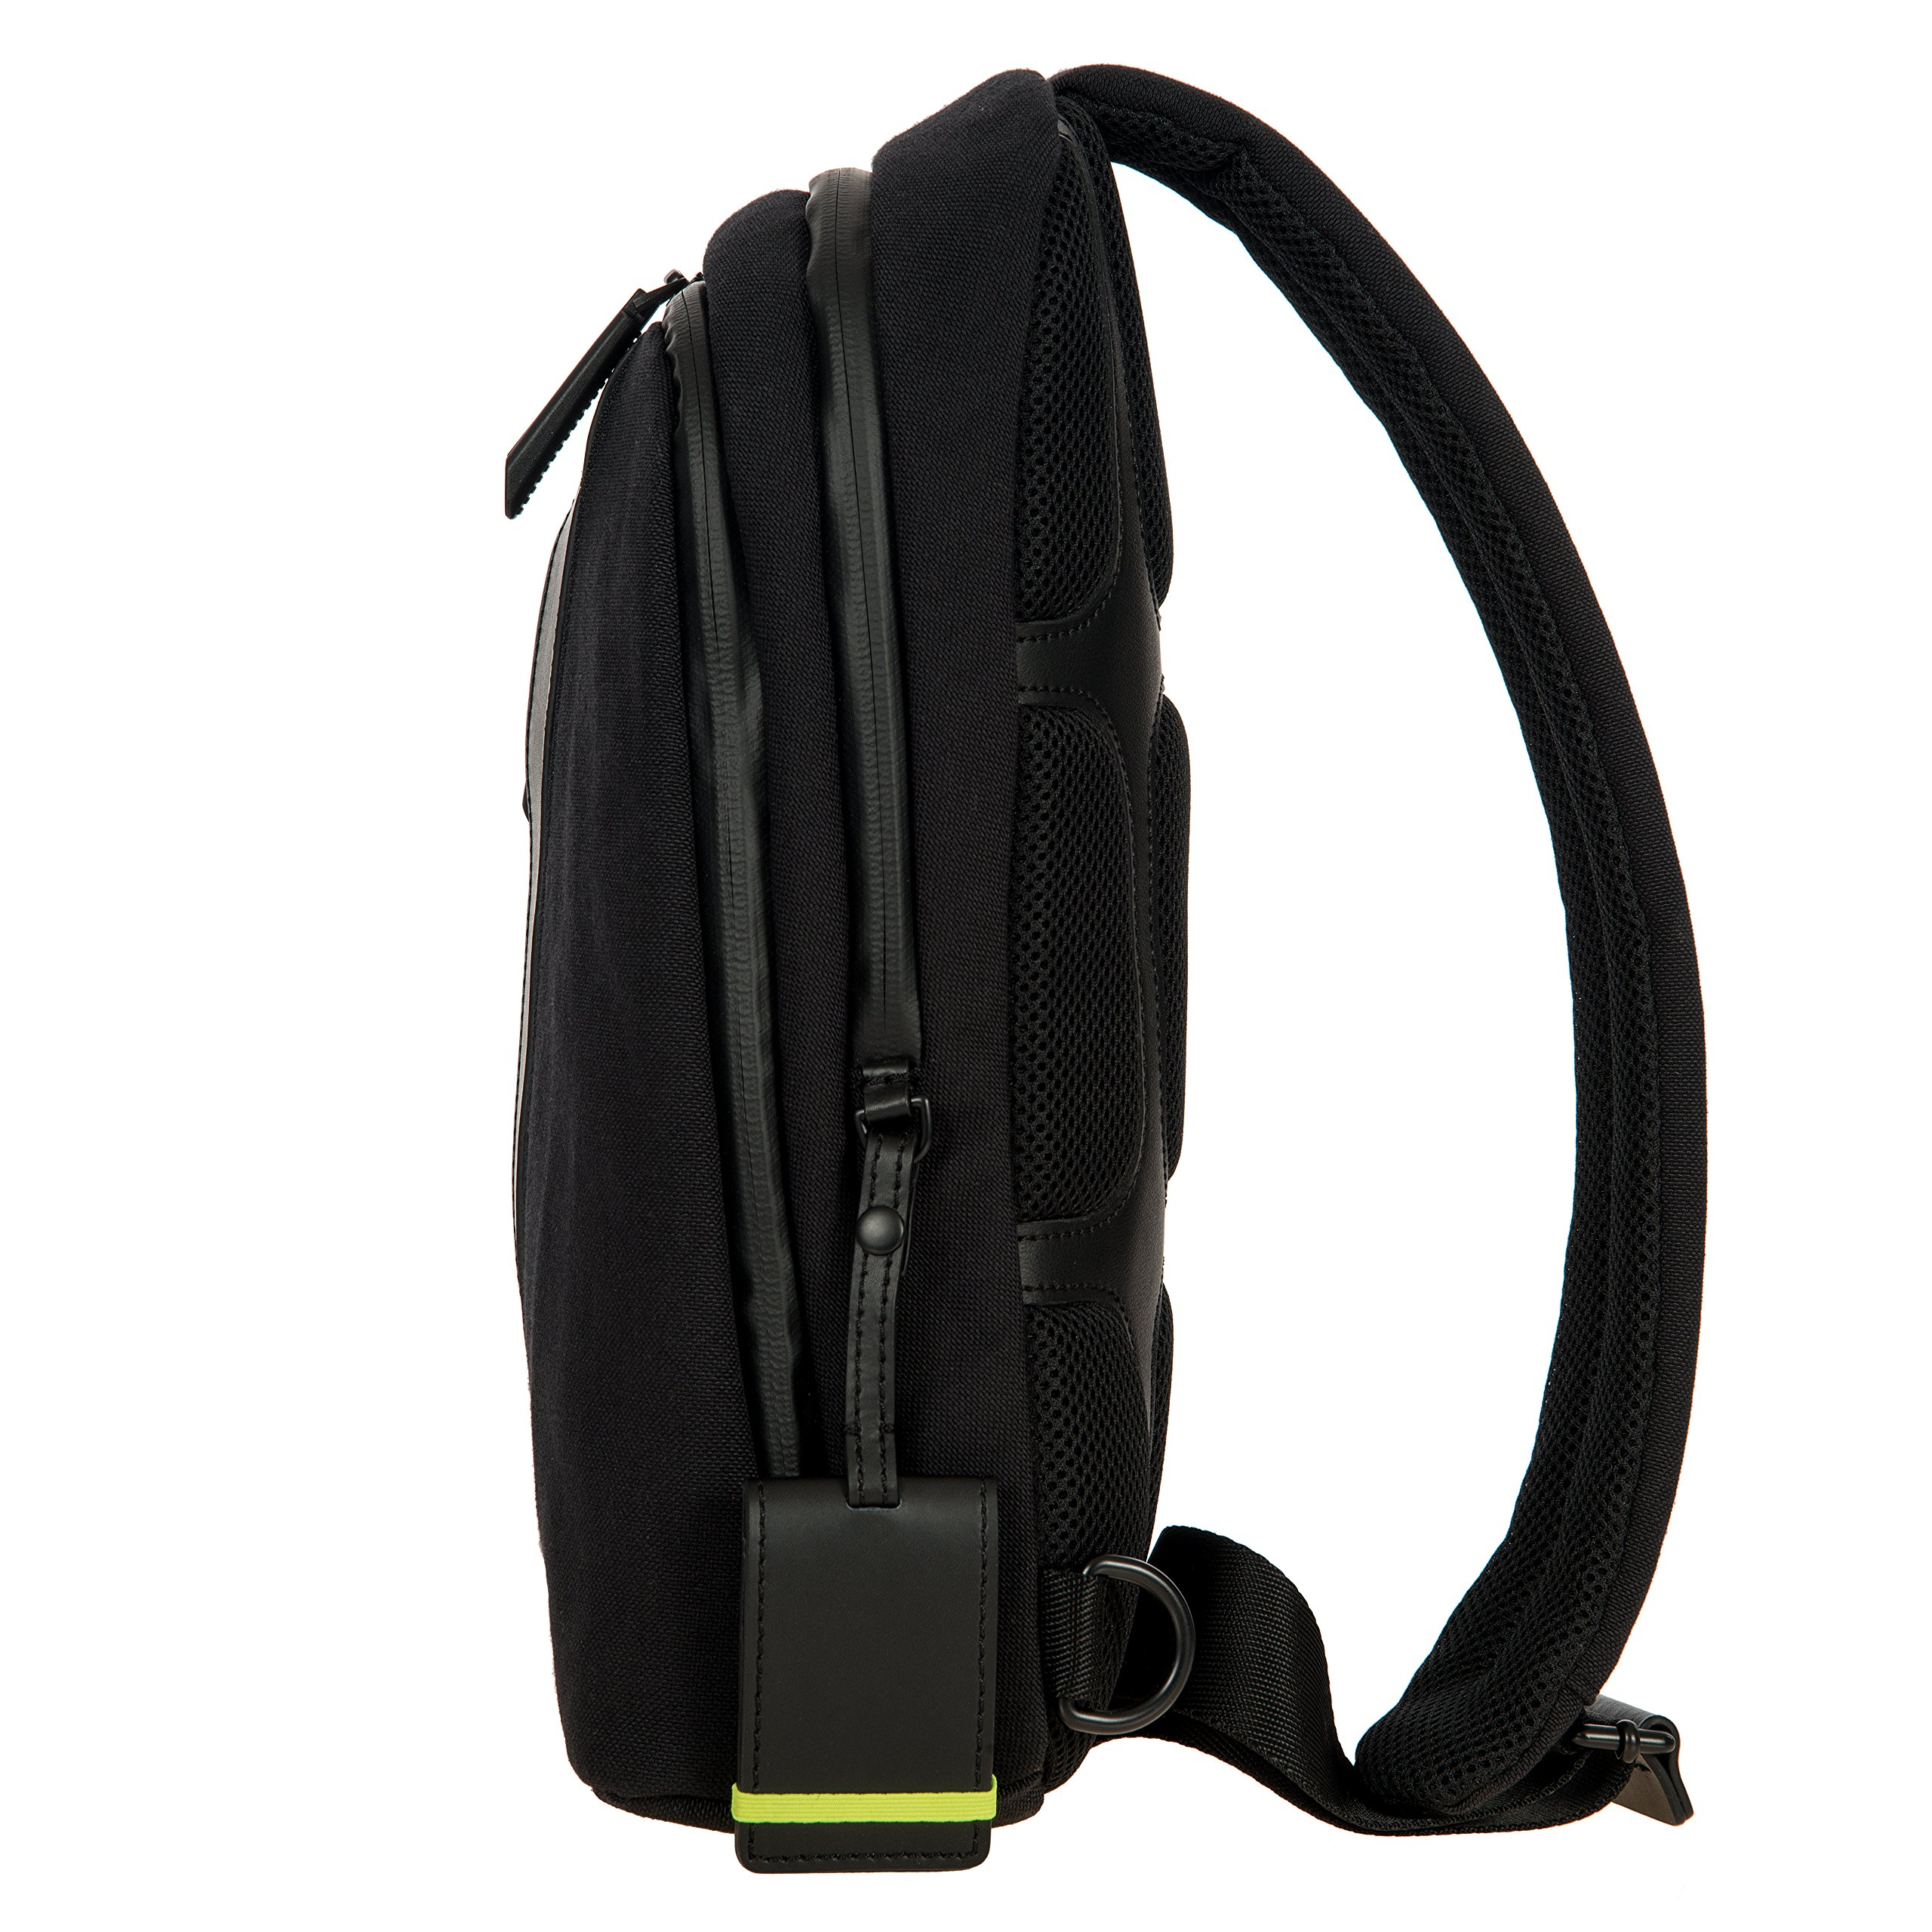 Bric's Men's Moleskine Bag Sling Backpack, Black, One Size by Bric's (Image #5)